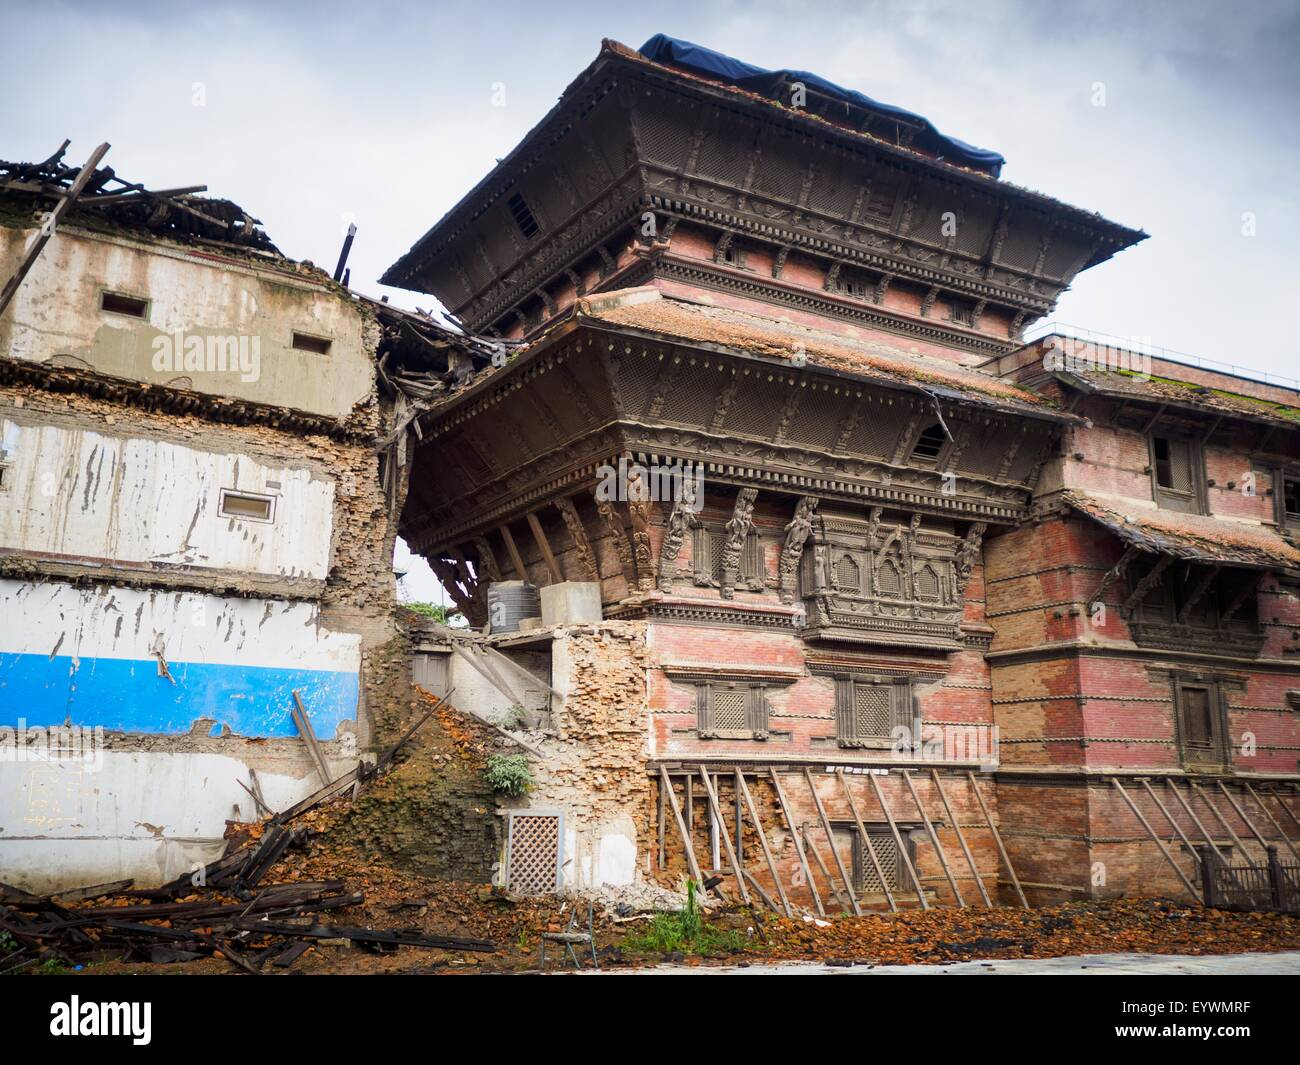 July 30, 2015 - Kathmandu, Nepal - Damage in Durbar Square in Kathmandu three months after the earthquake. The Nepal - Stock Image